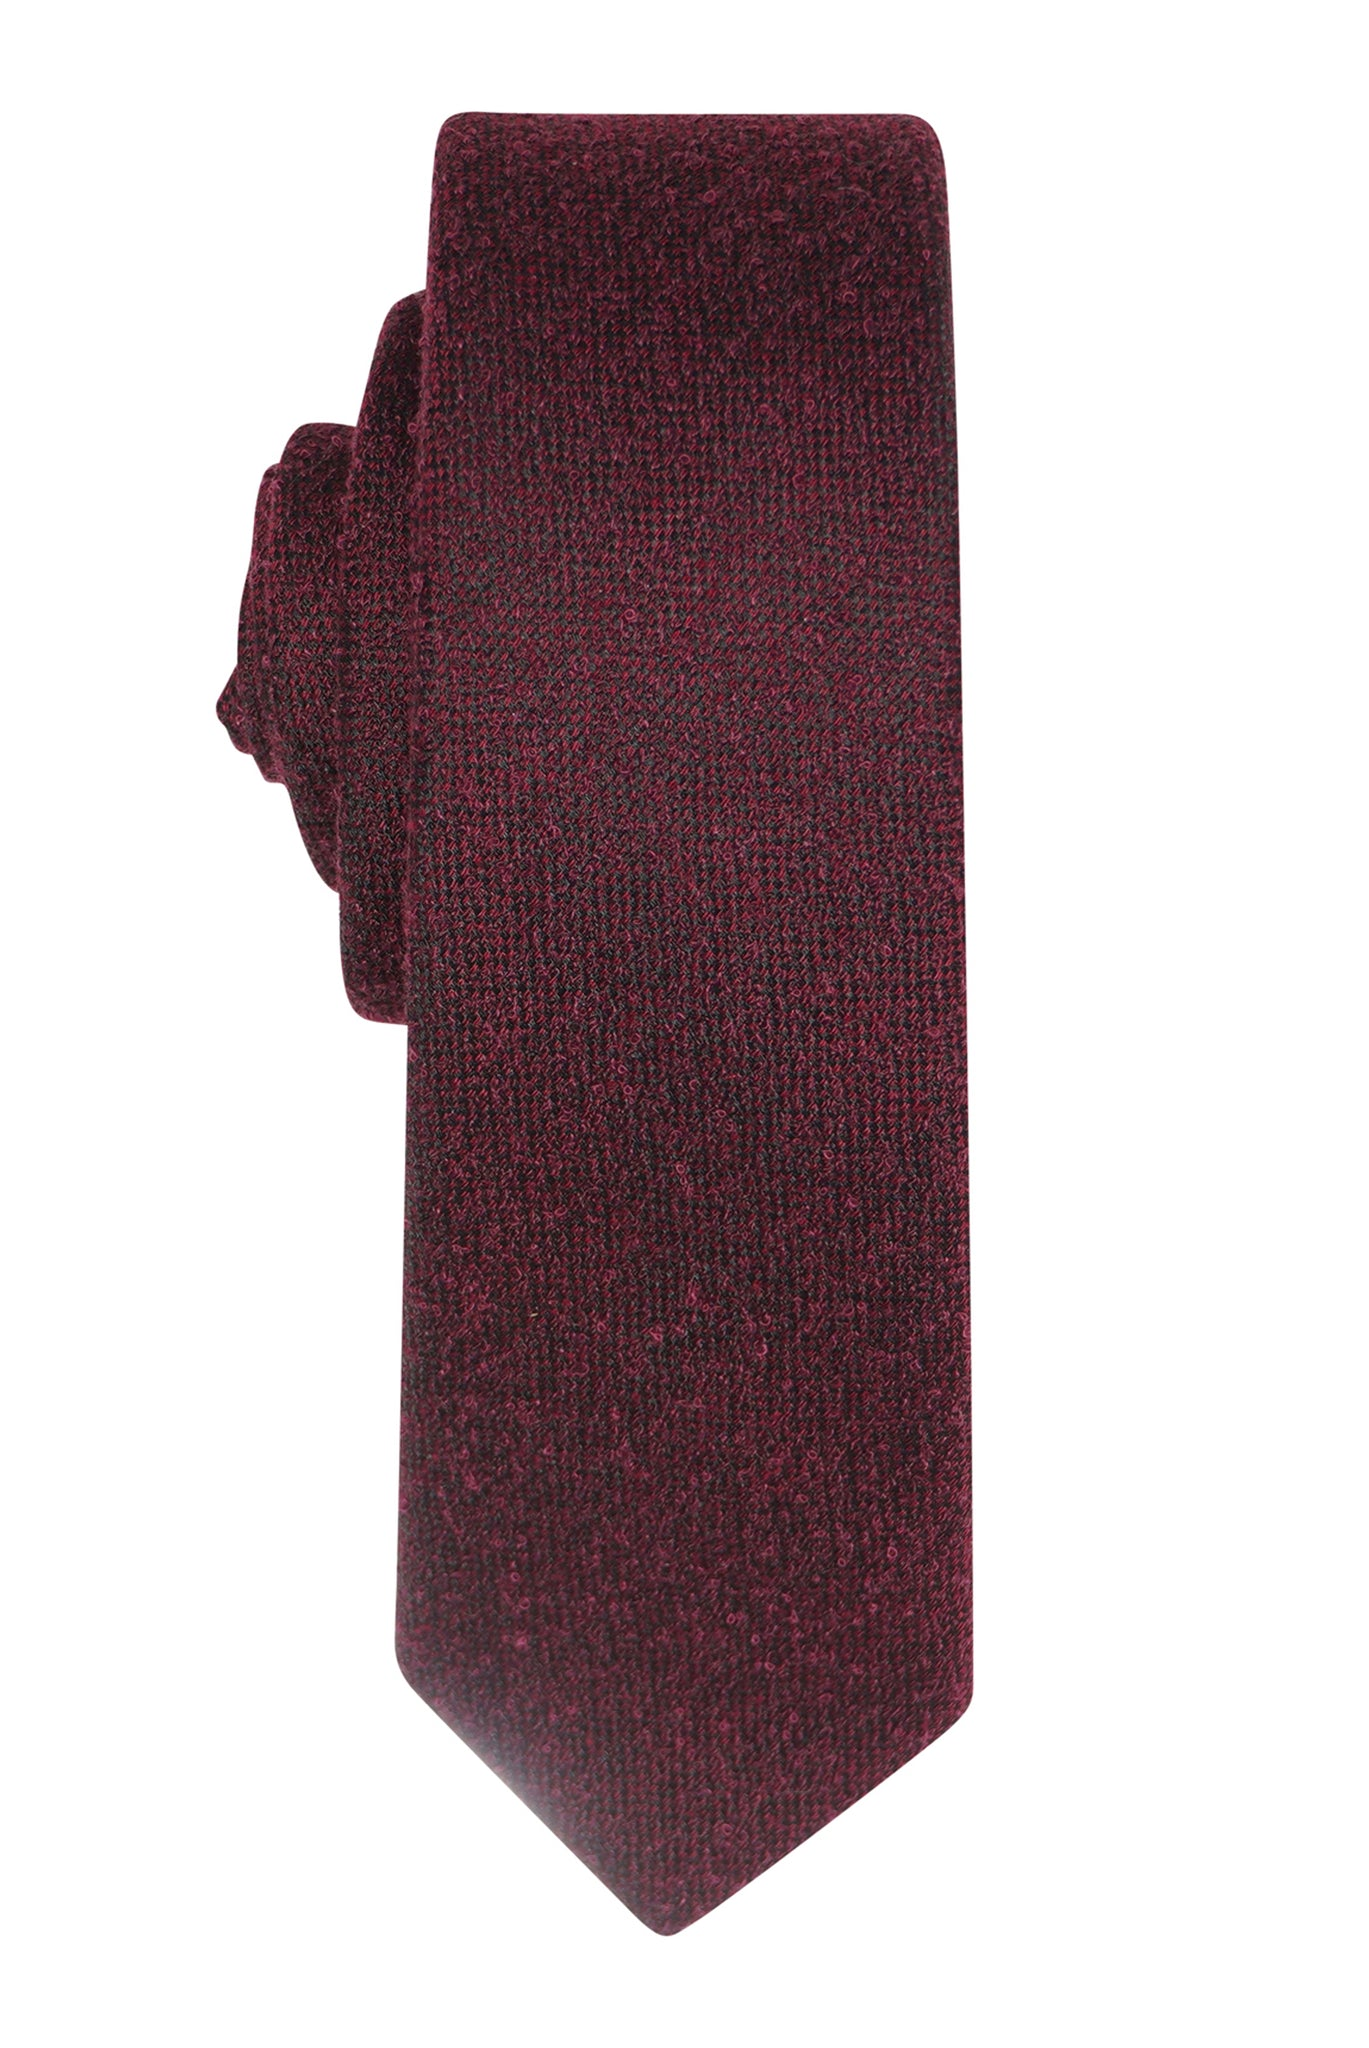 Wine Bobble Textured Tie